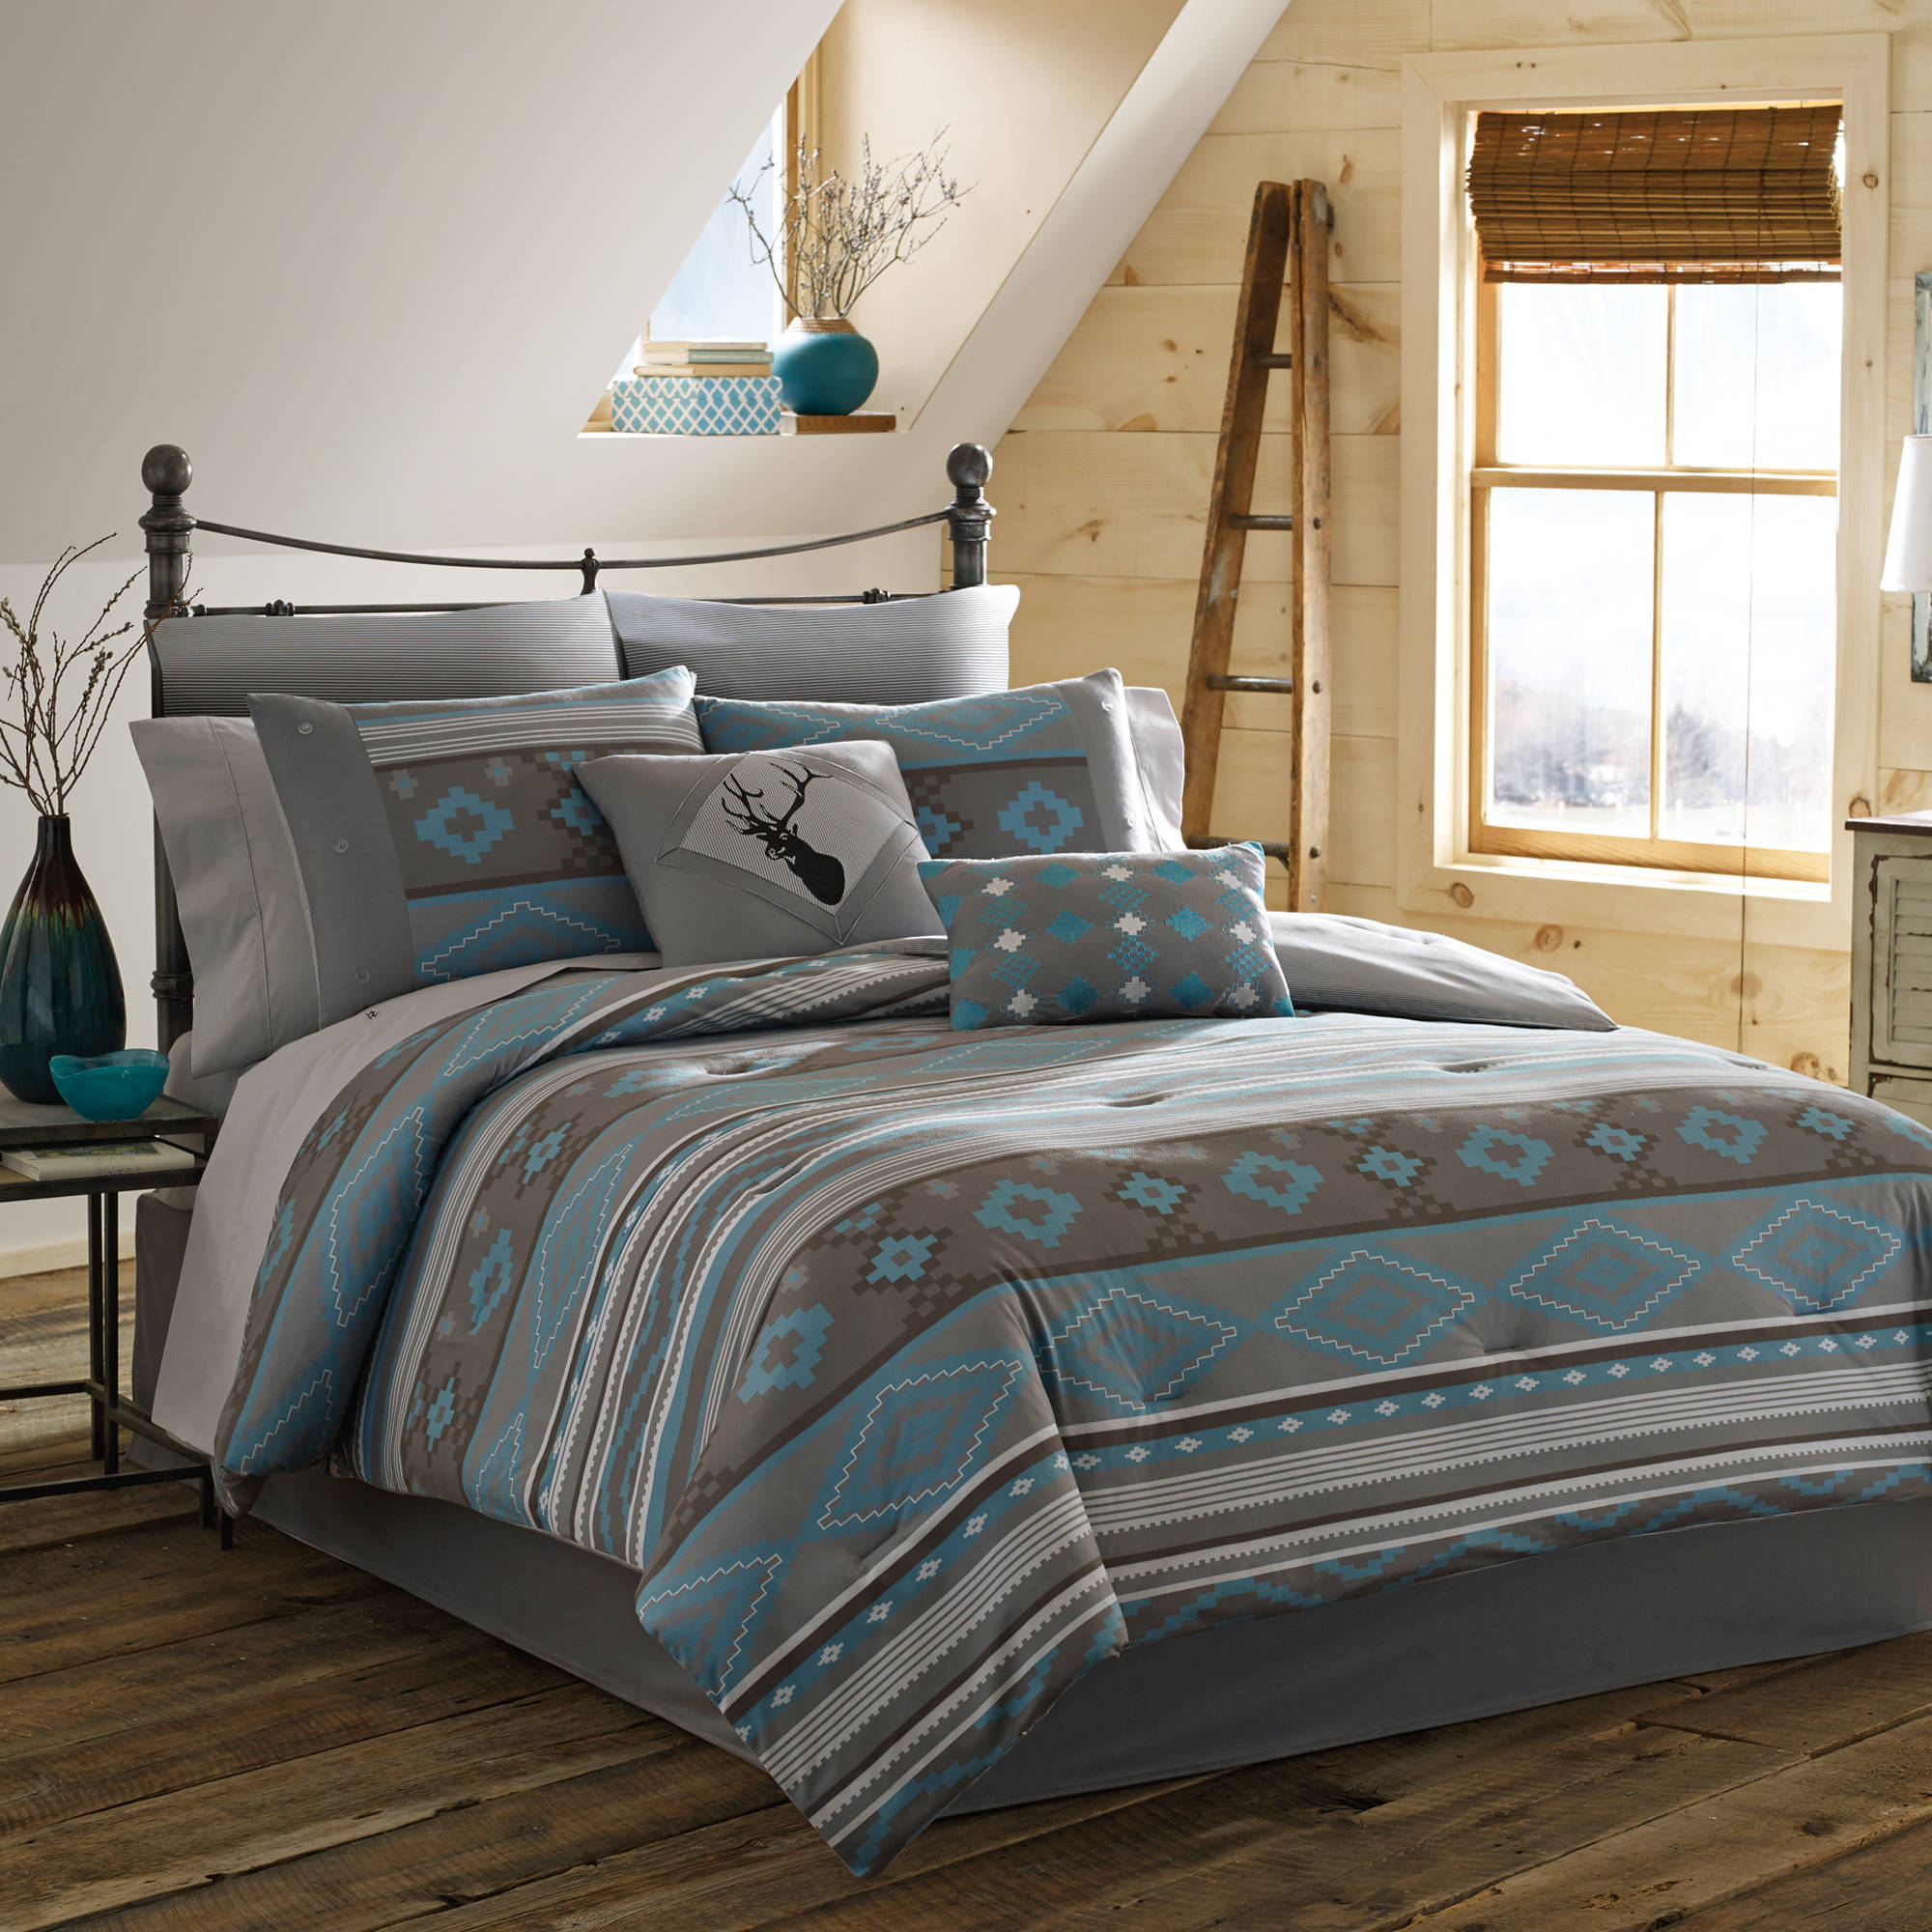 sale sets turquoise queen full comforter bedding girls on likeable appealing gray bed set coral interior size for from and home cheap